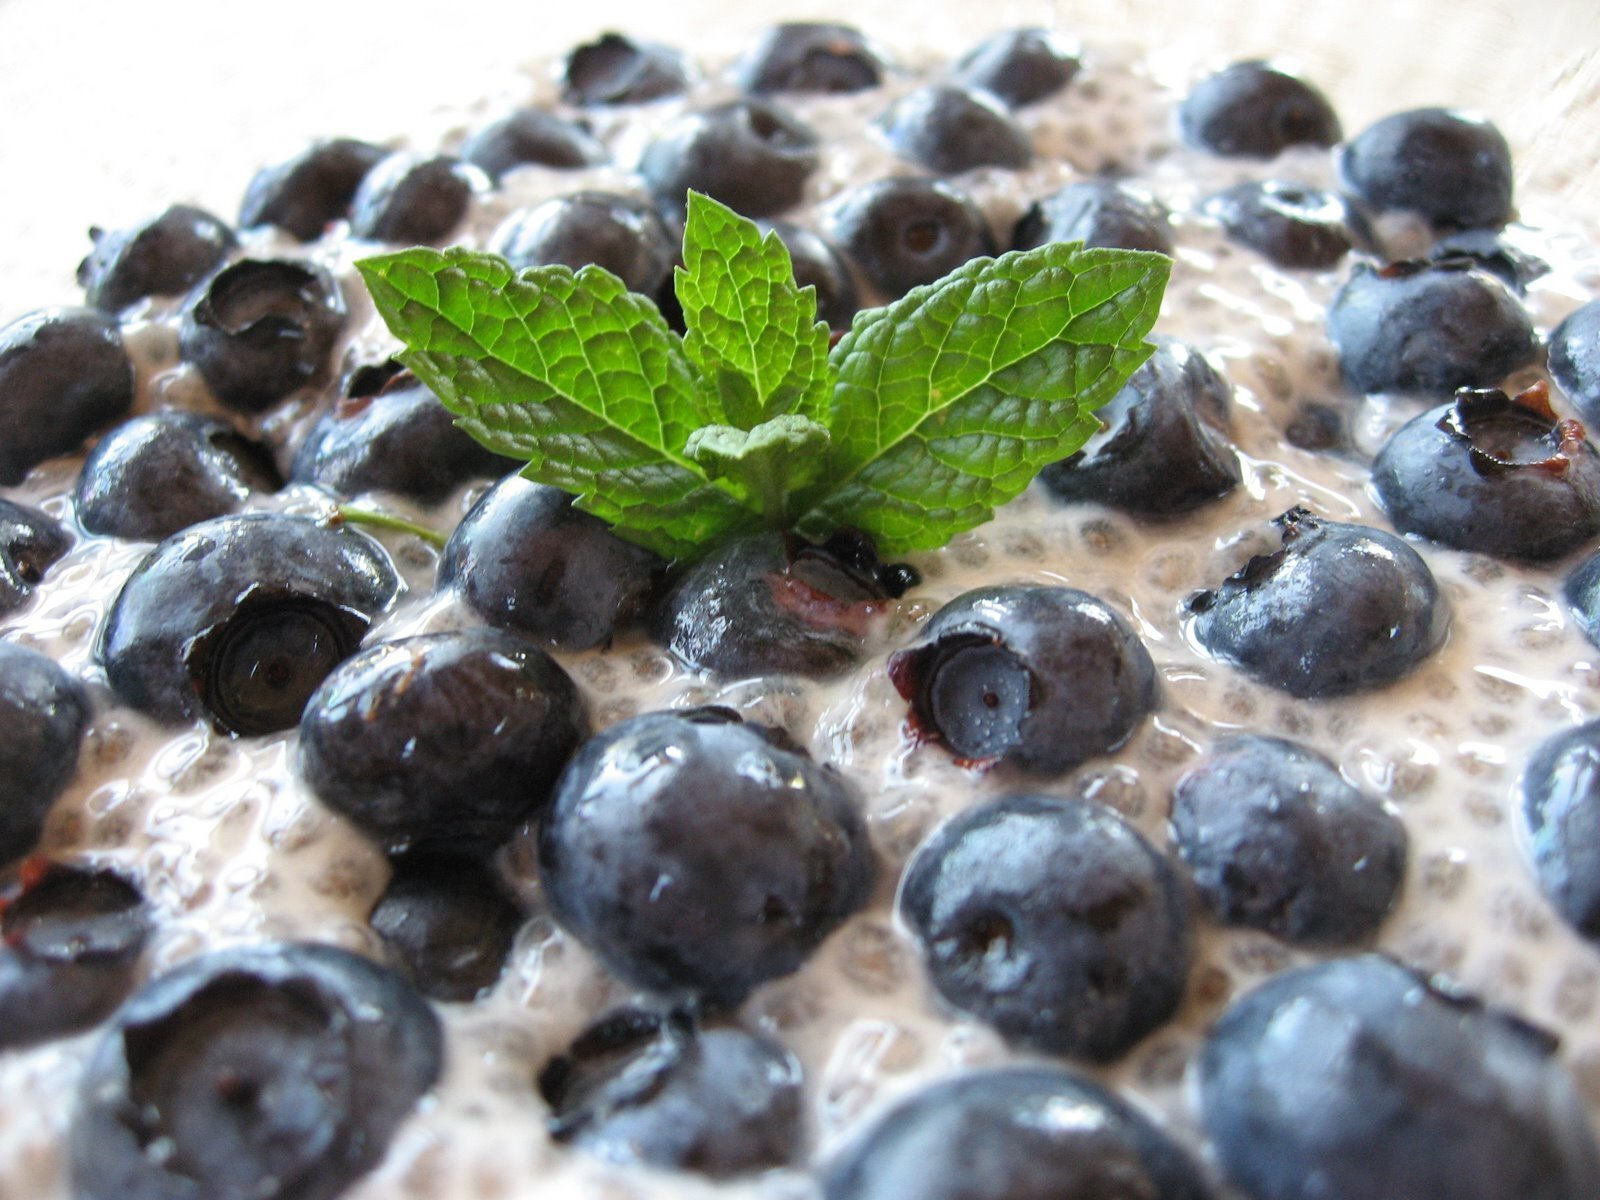 Vegan Vanilla Chia Seed Pudding with Hemp Milk and Blueberries - High in Omega 3 and Antioxidants